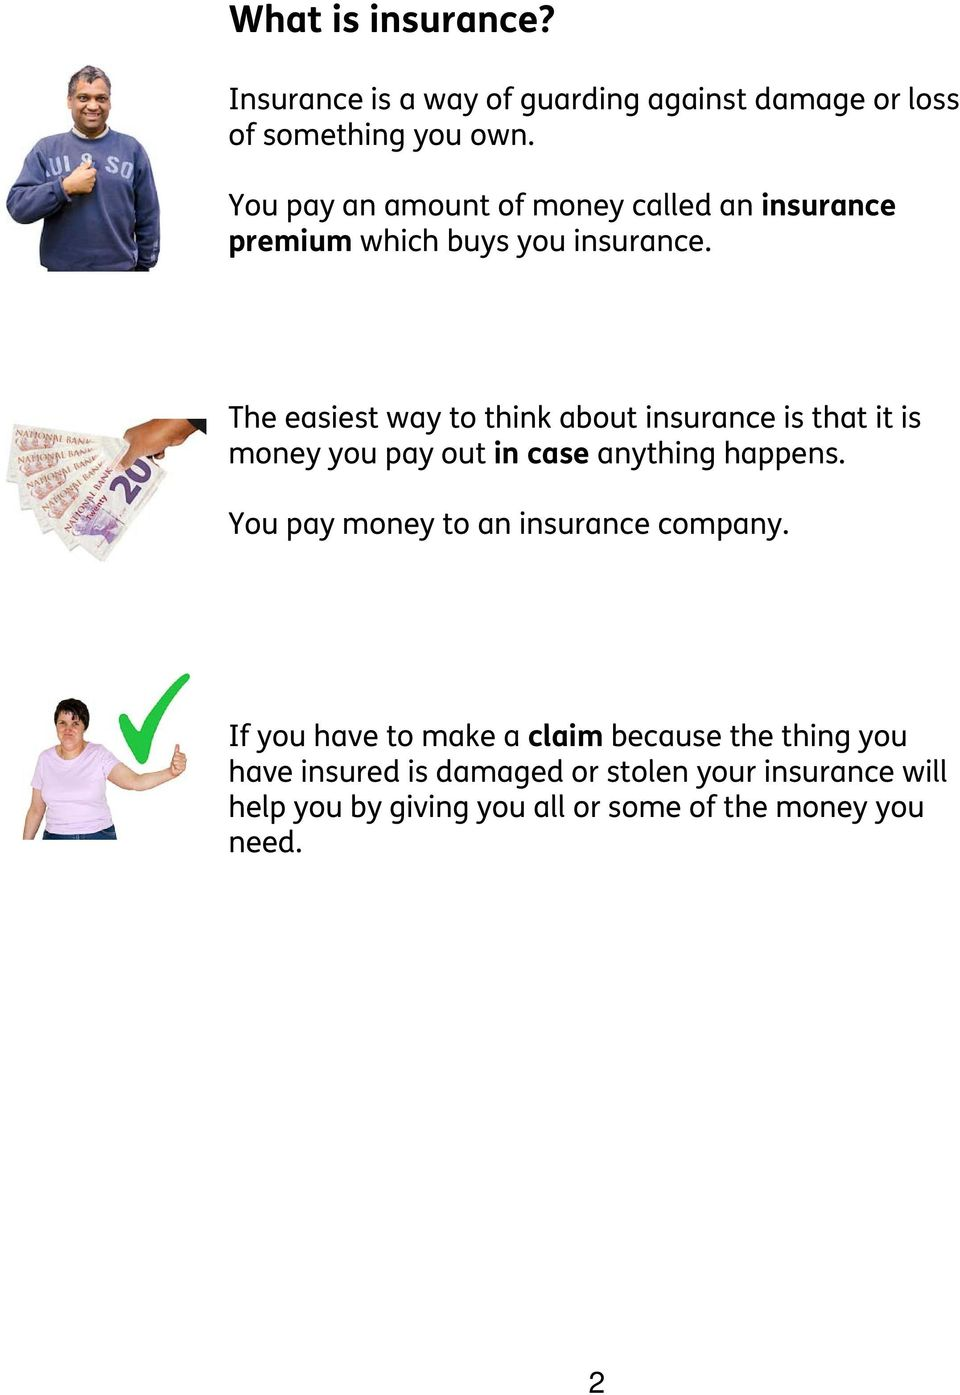 The easiest way to think about insurance is that it is money you pay out in case anything happens.